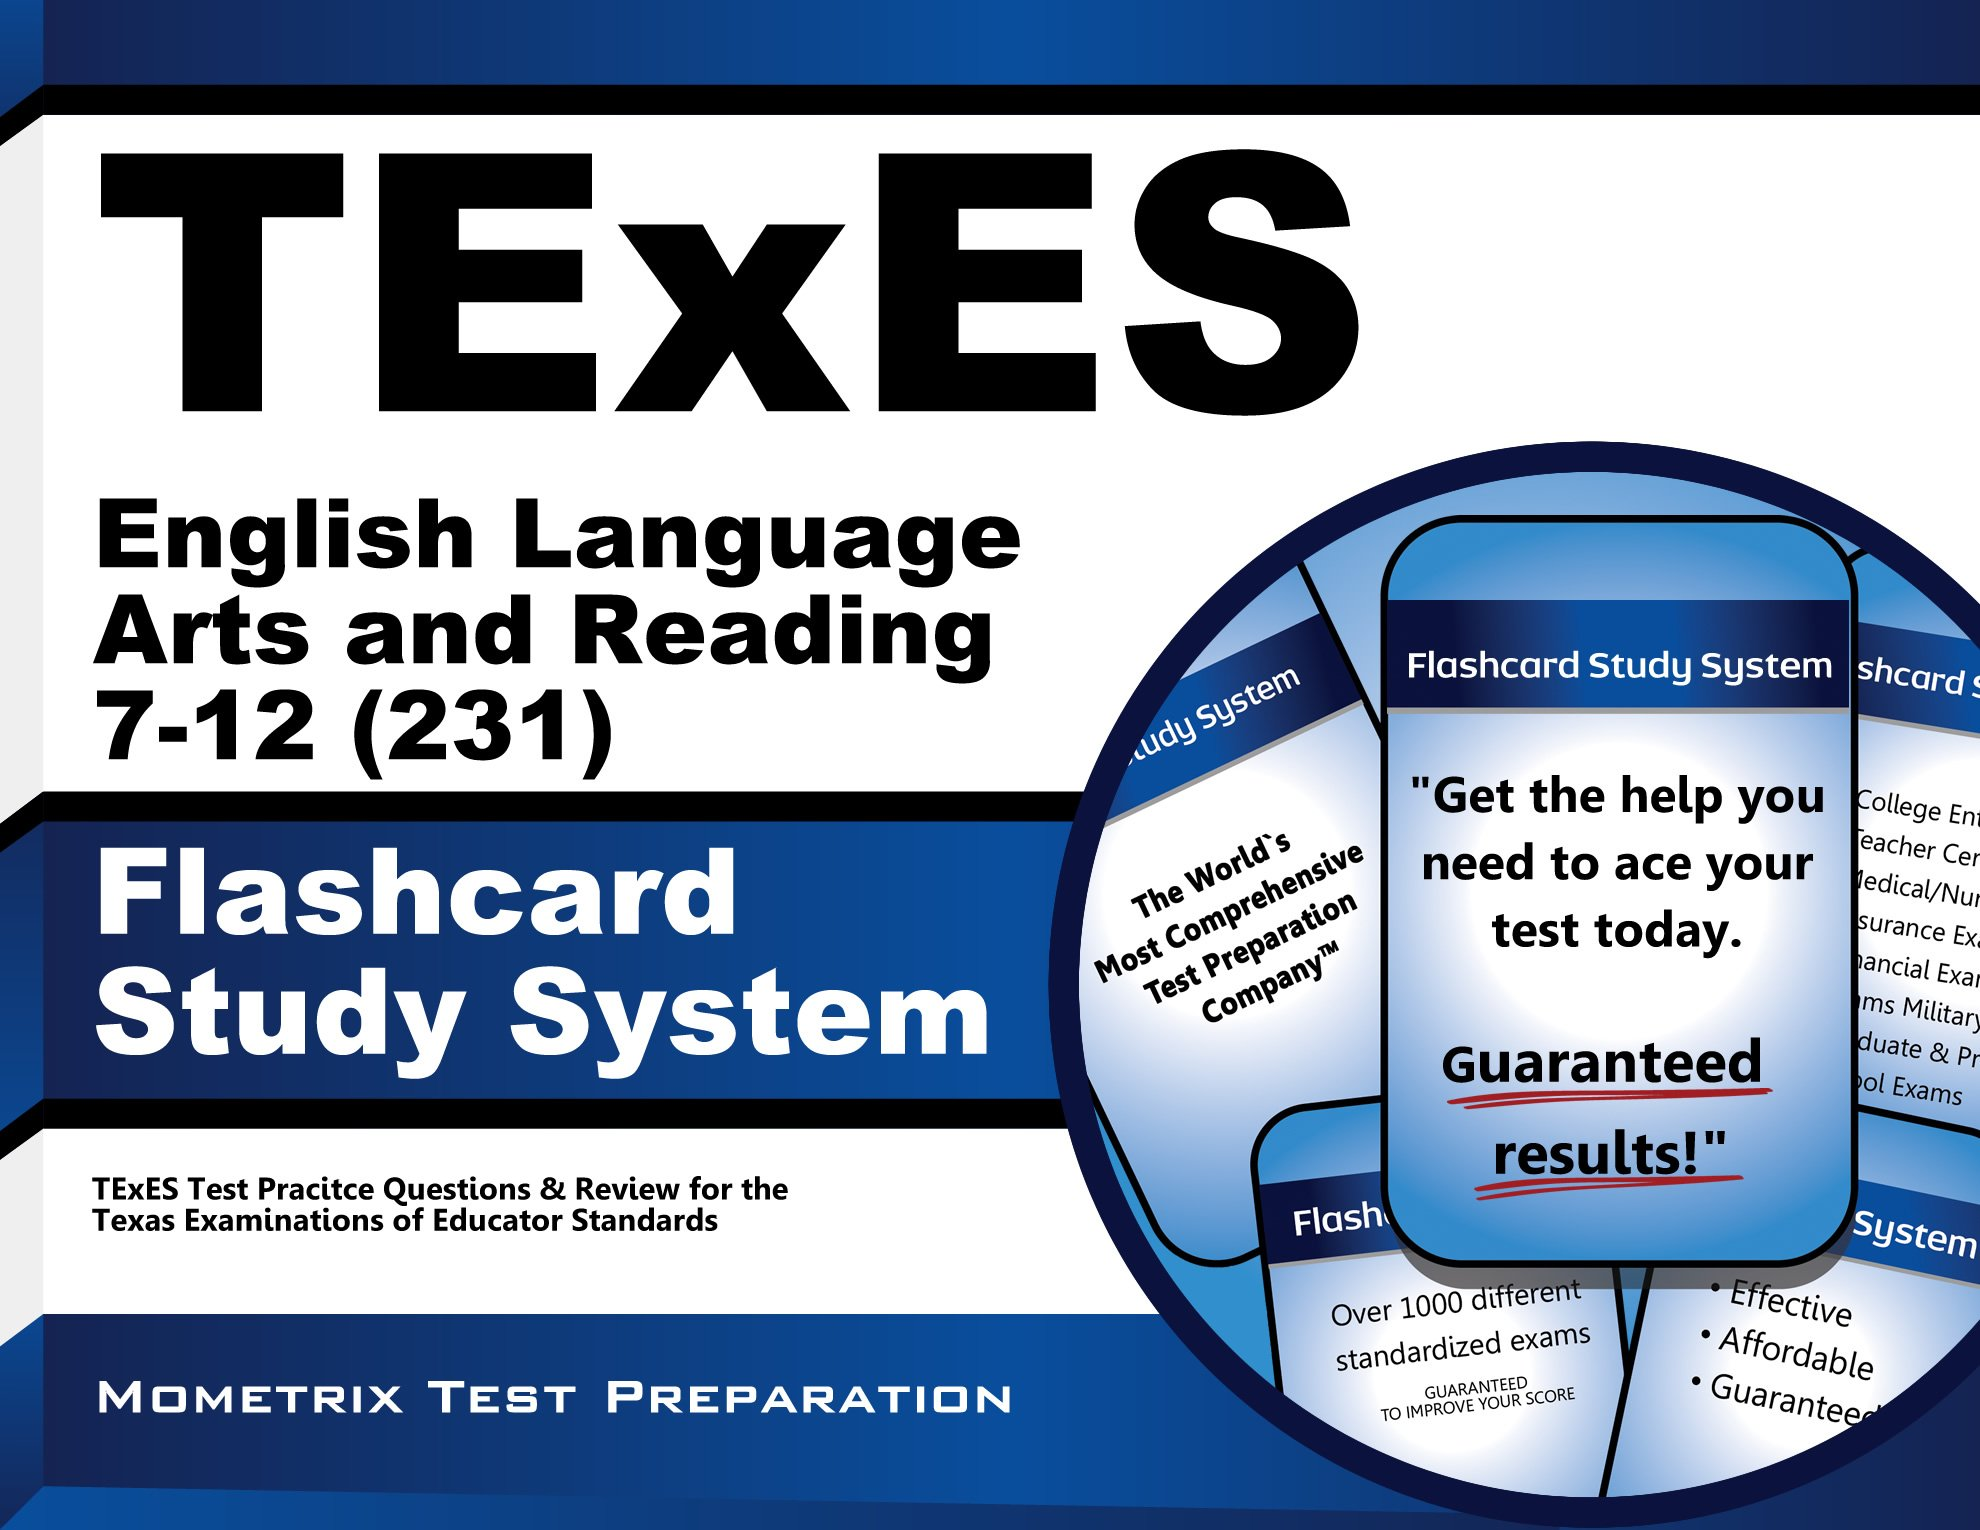 TExES English Language Arts and Reading 7-12 (231) Flashcard Study System: TExES Test Practice Questions & Review for the Texas Examinations of Educator Standards (Cards) by Mometrix Media LLC